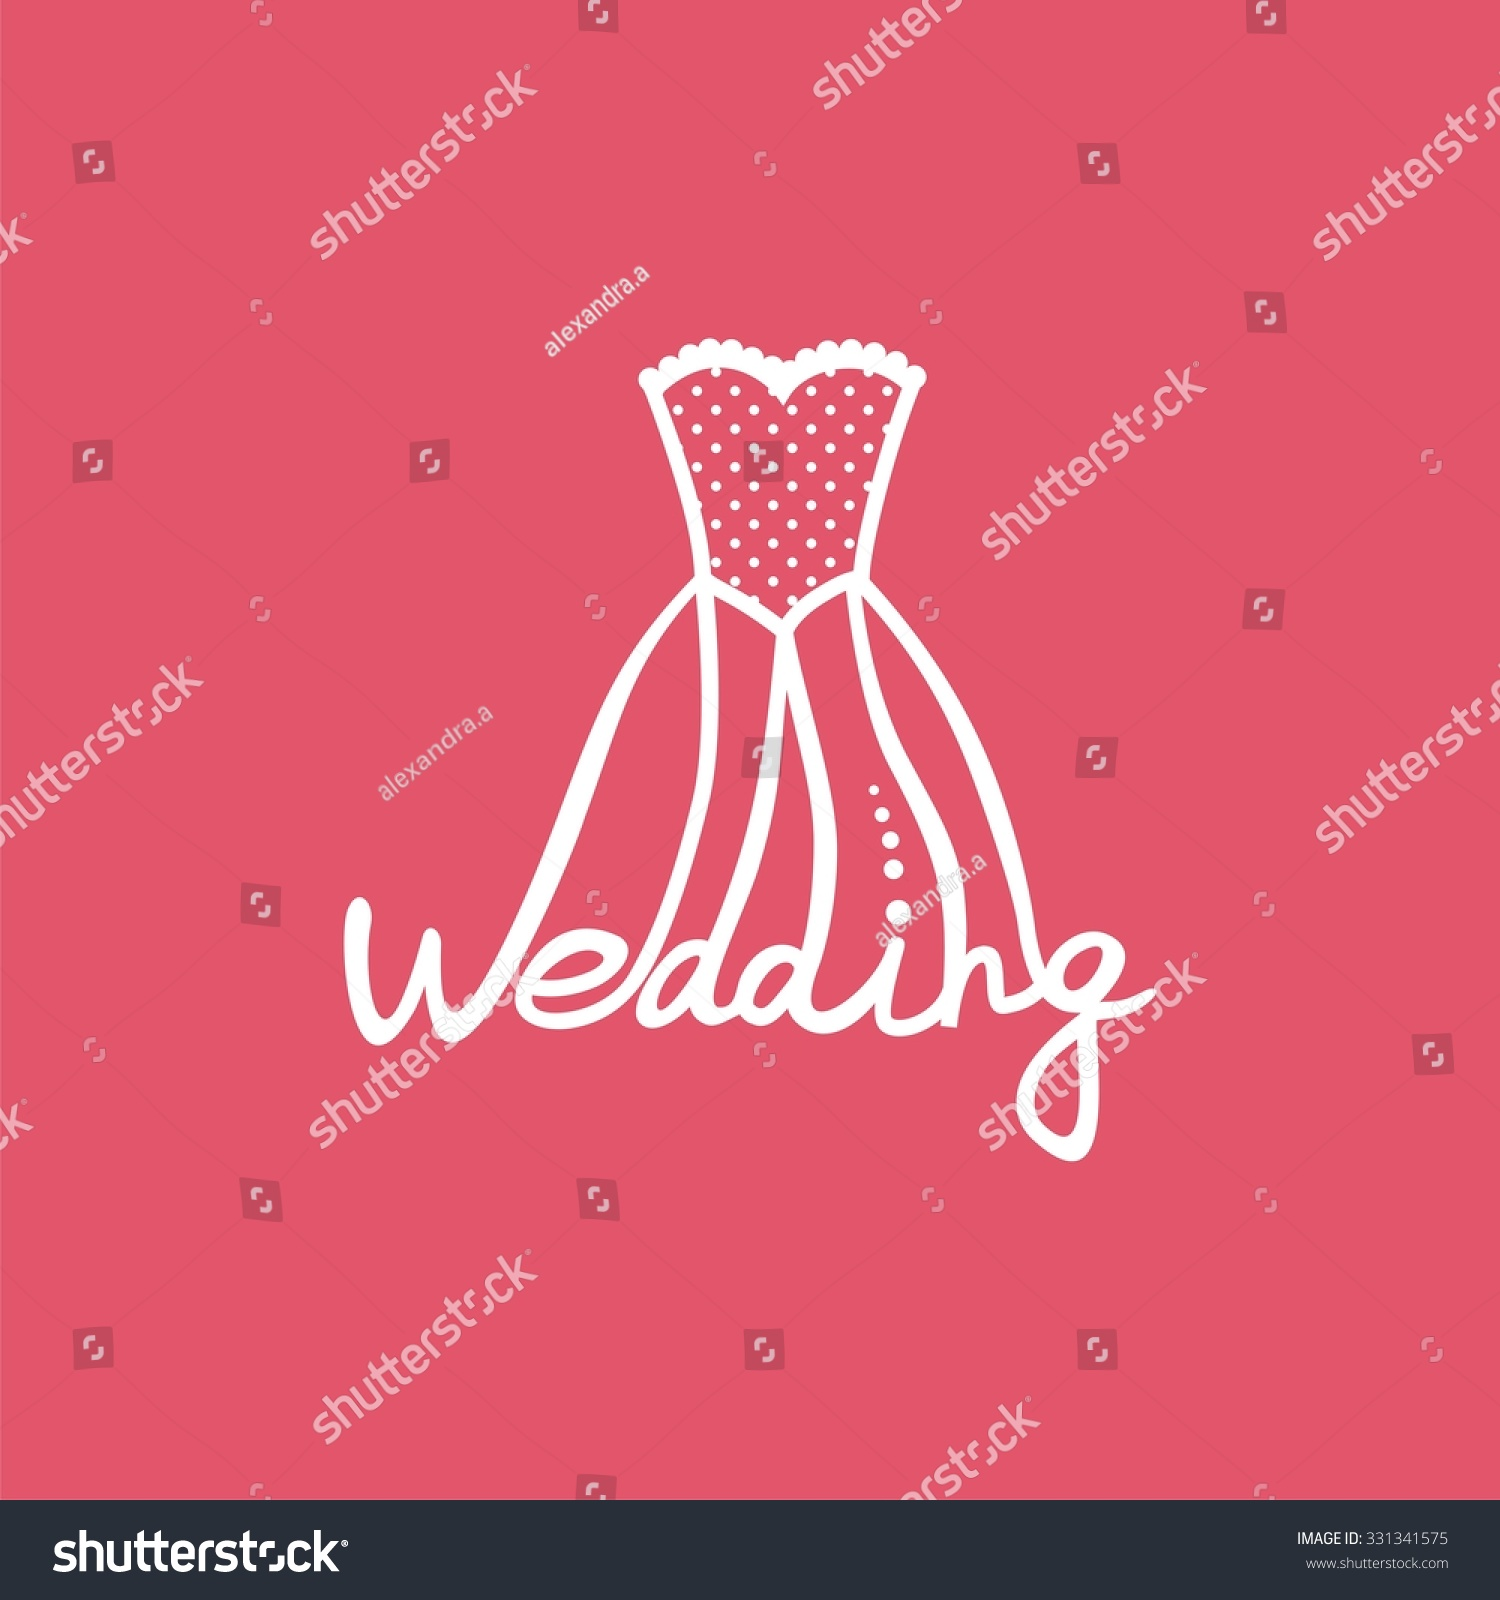 Logo Wedding Dress Image Invitation Card Stock Vector (Royalty Free ...